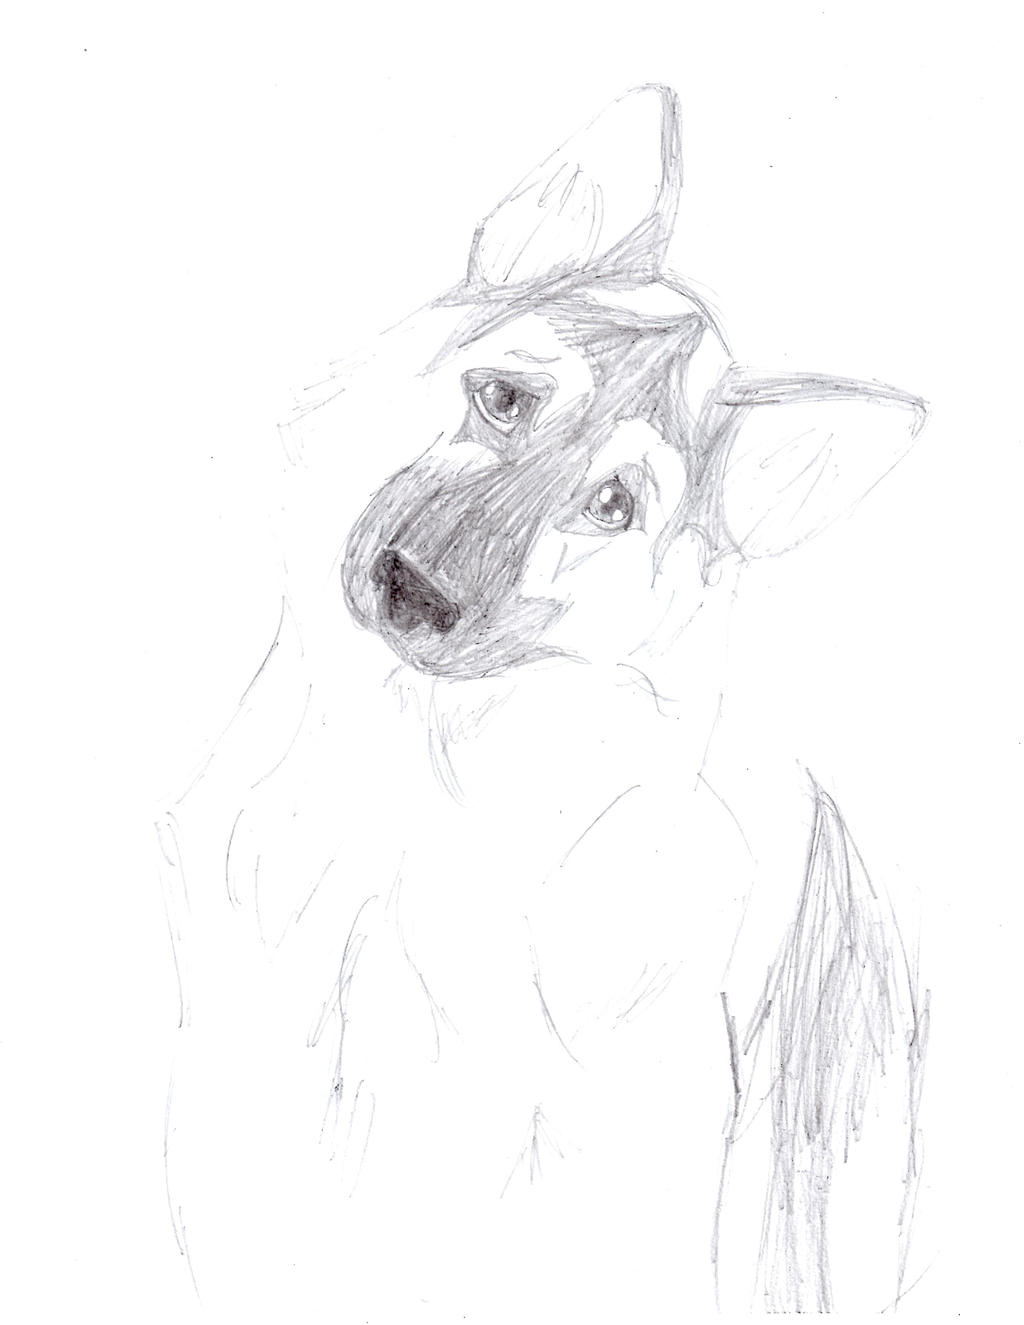 Confused German Shepherd by FieryCreator on DeviantArt